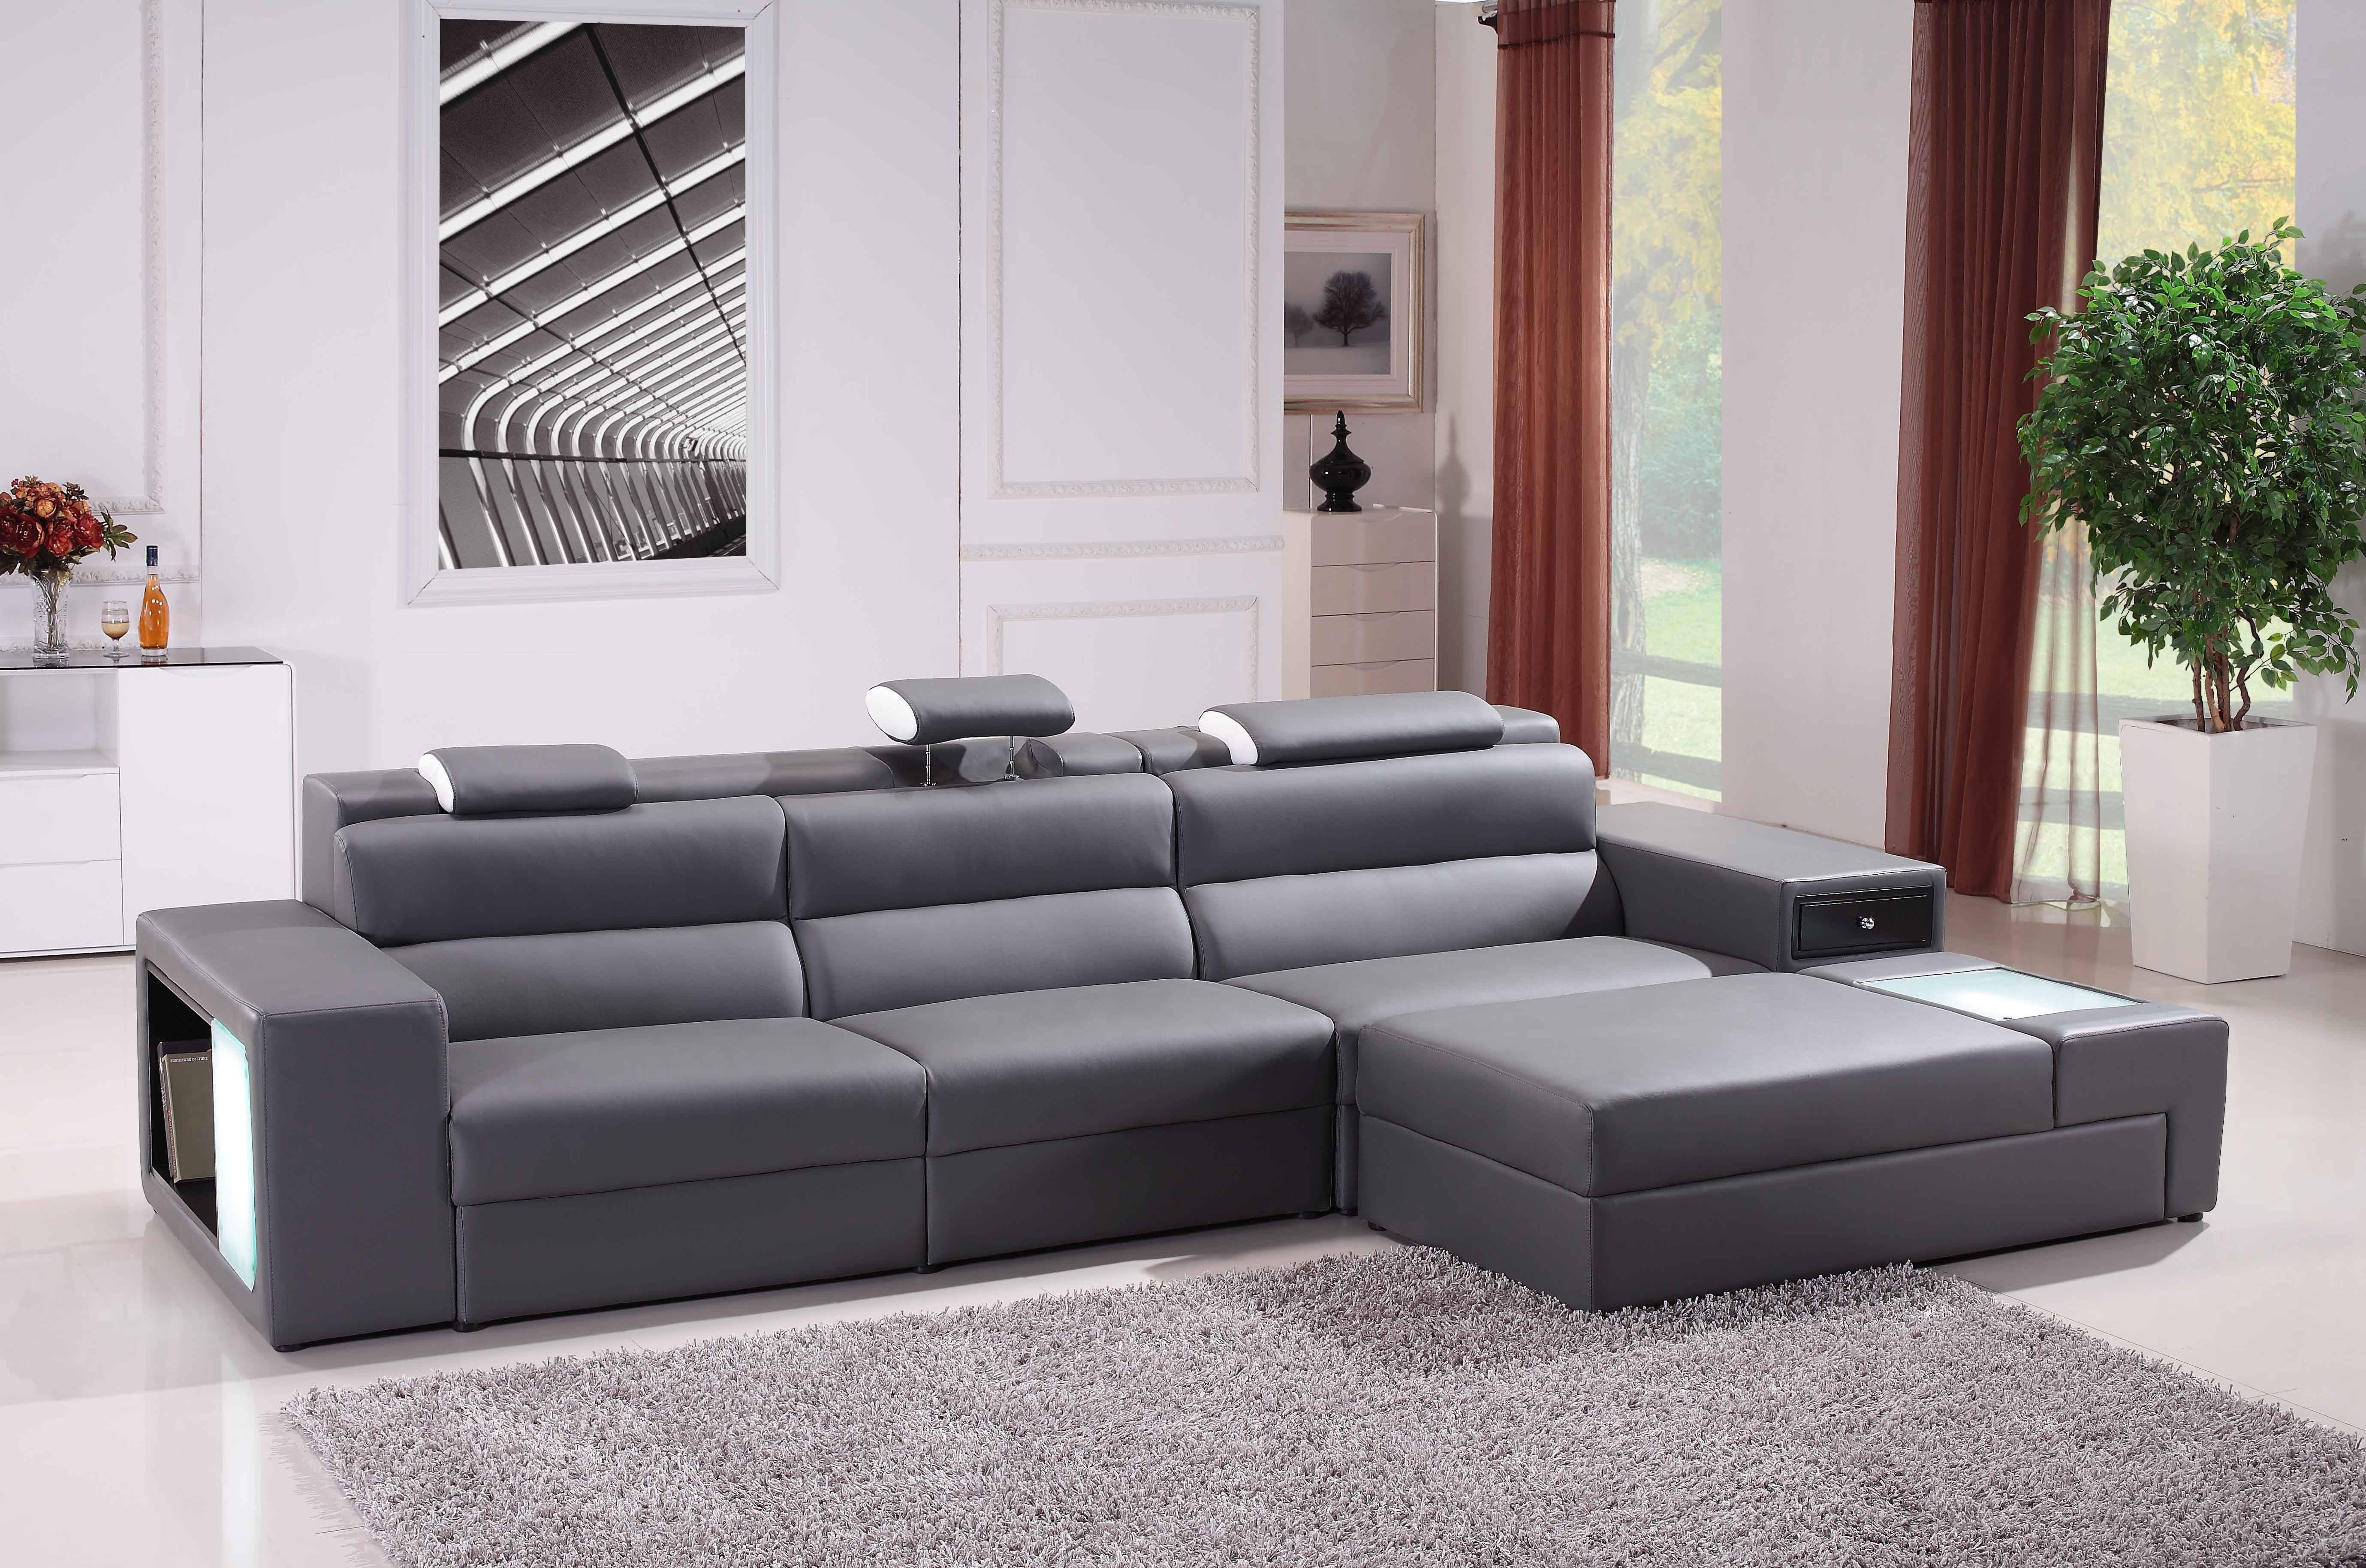 Popular Gray Sectional Sofa With Chaise Lounge 87 In Angled Sofa throughout Angled Sofa Sectional (Image 20 of 30)